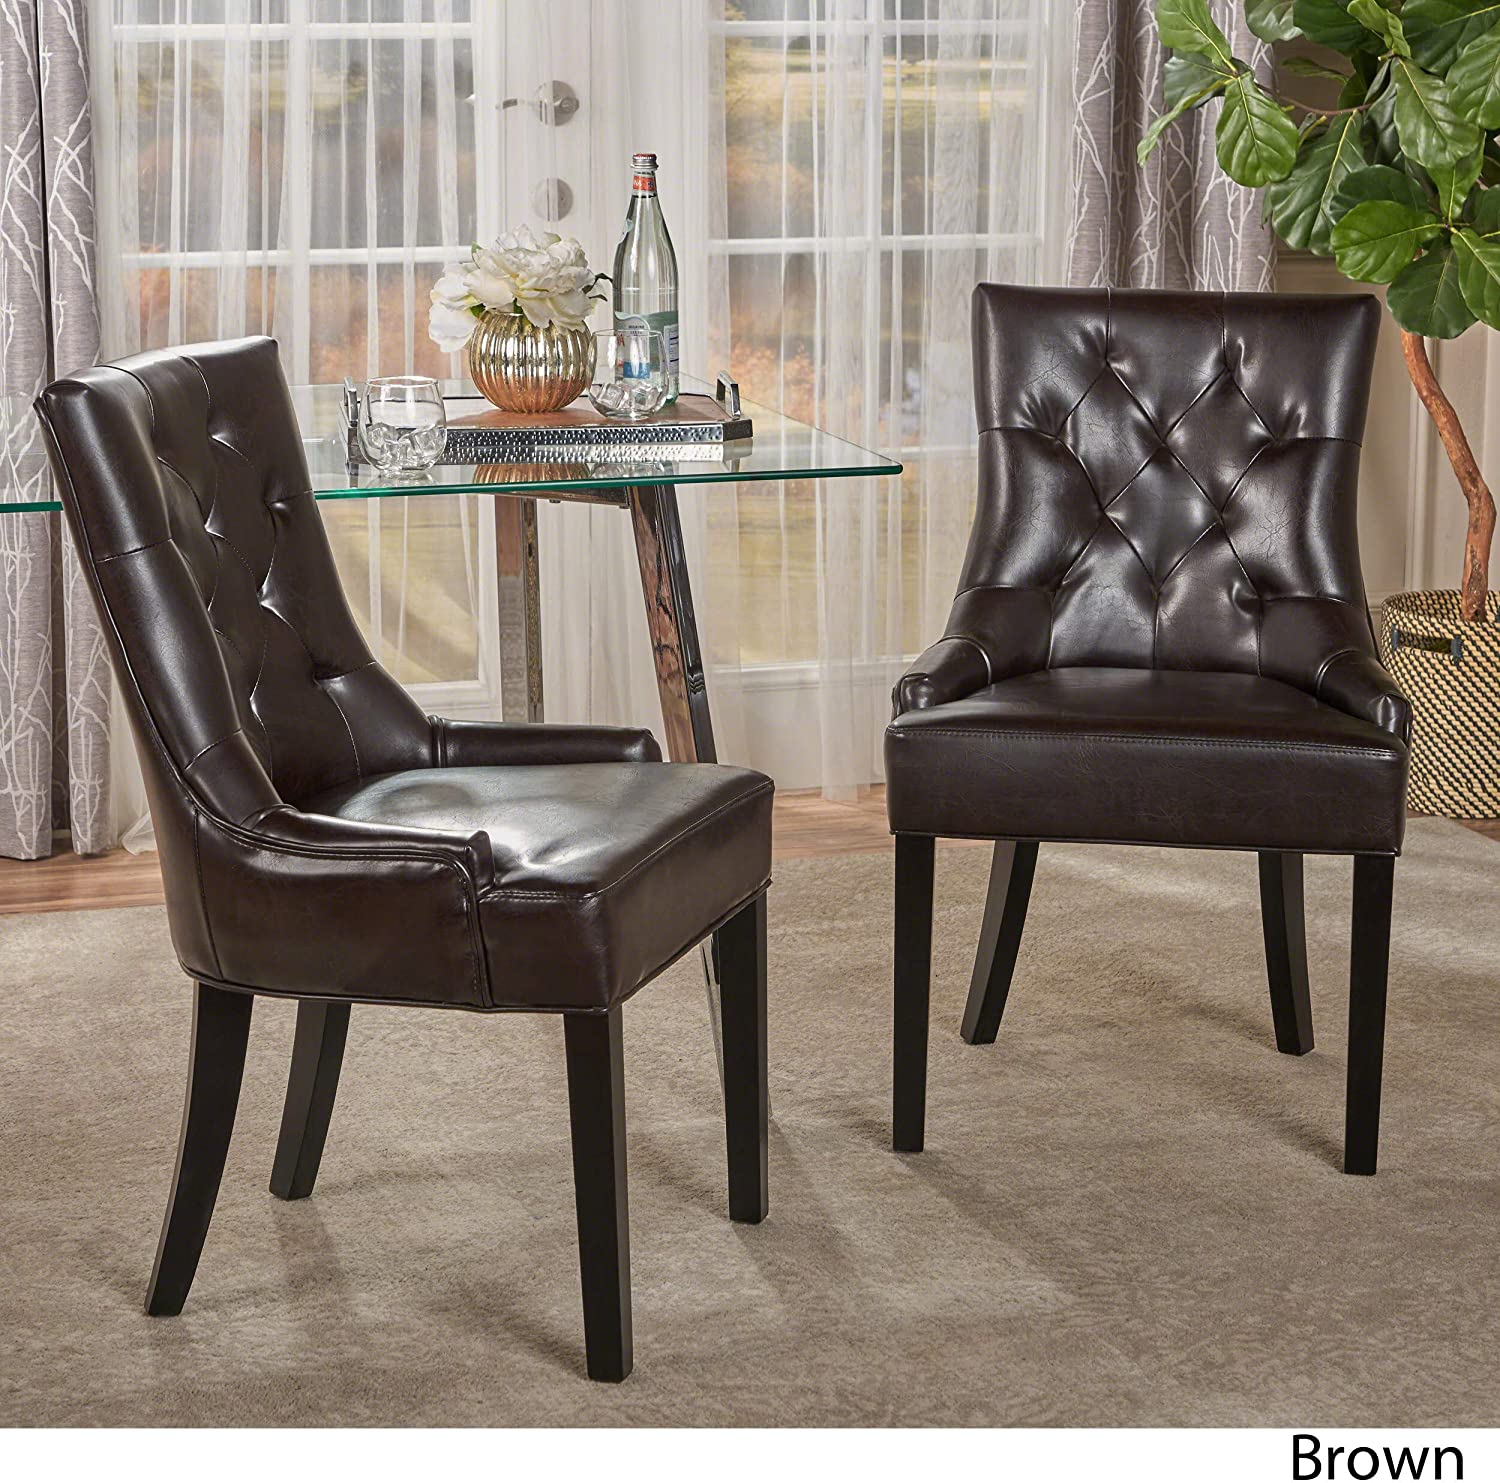 Brown Christopher Knight Home Stacy Leather Dining Chair